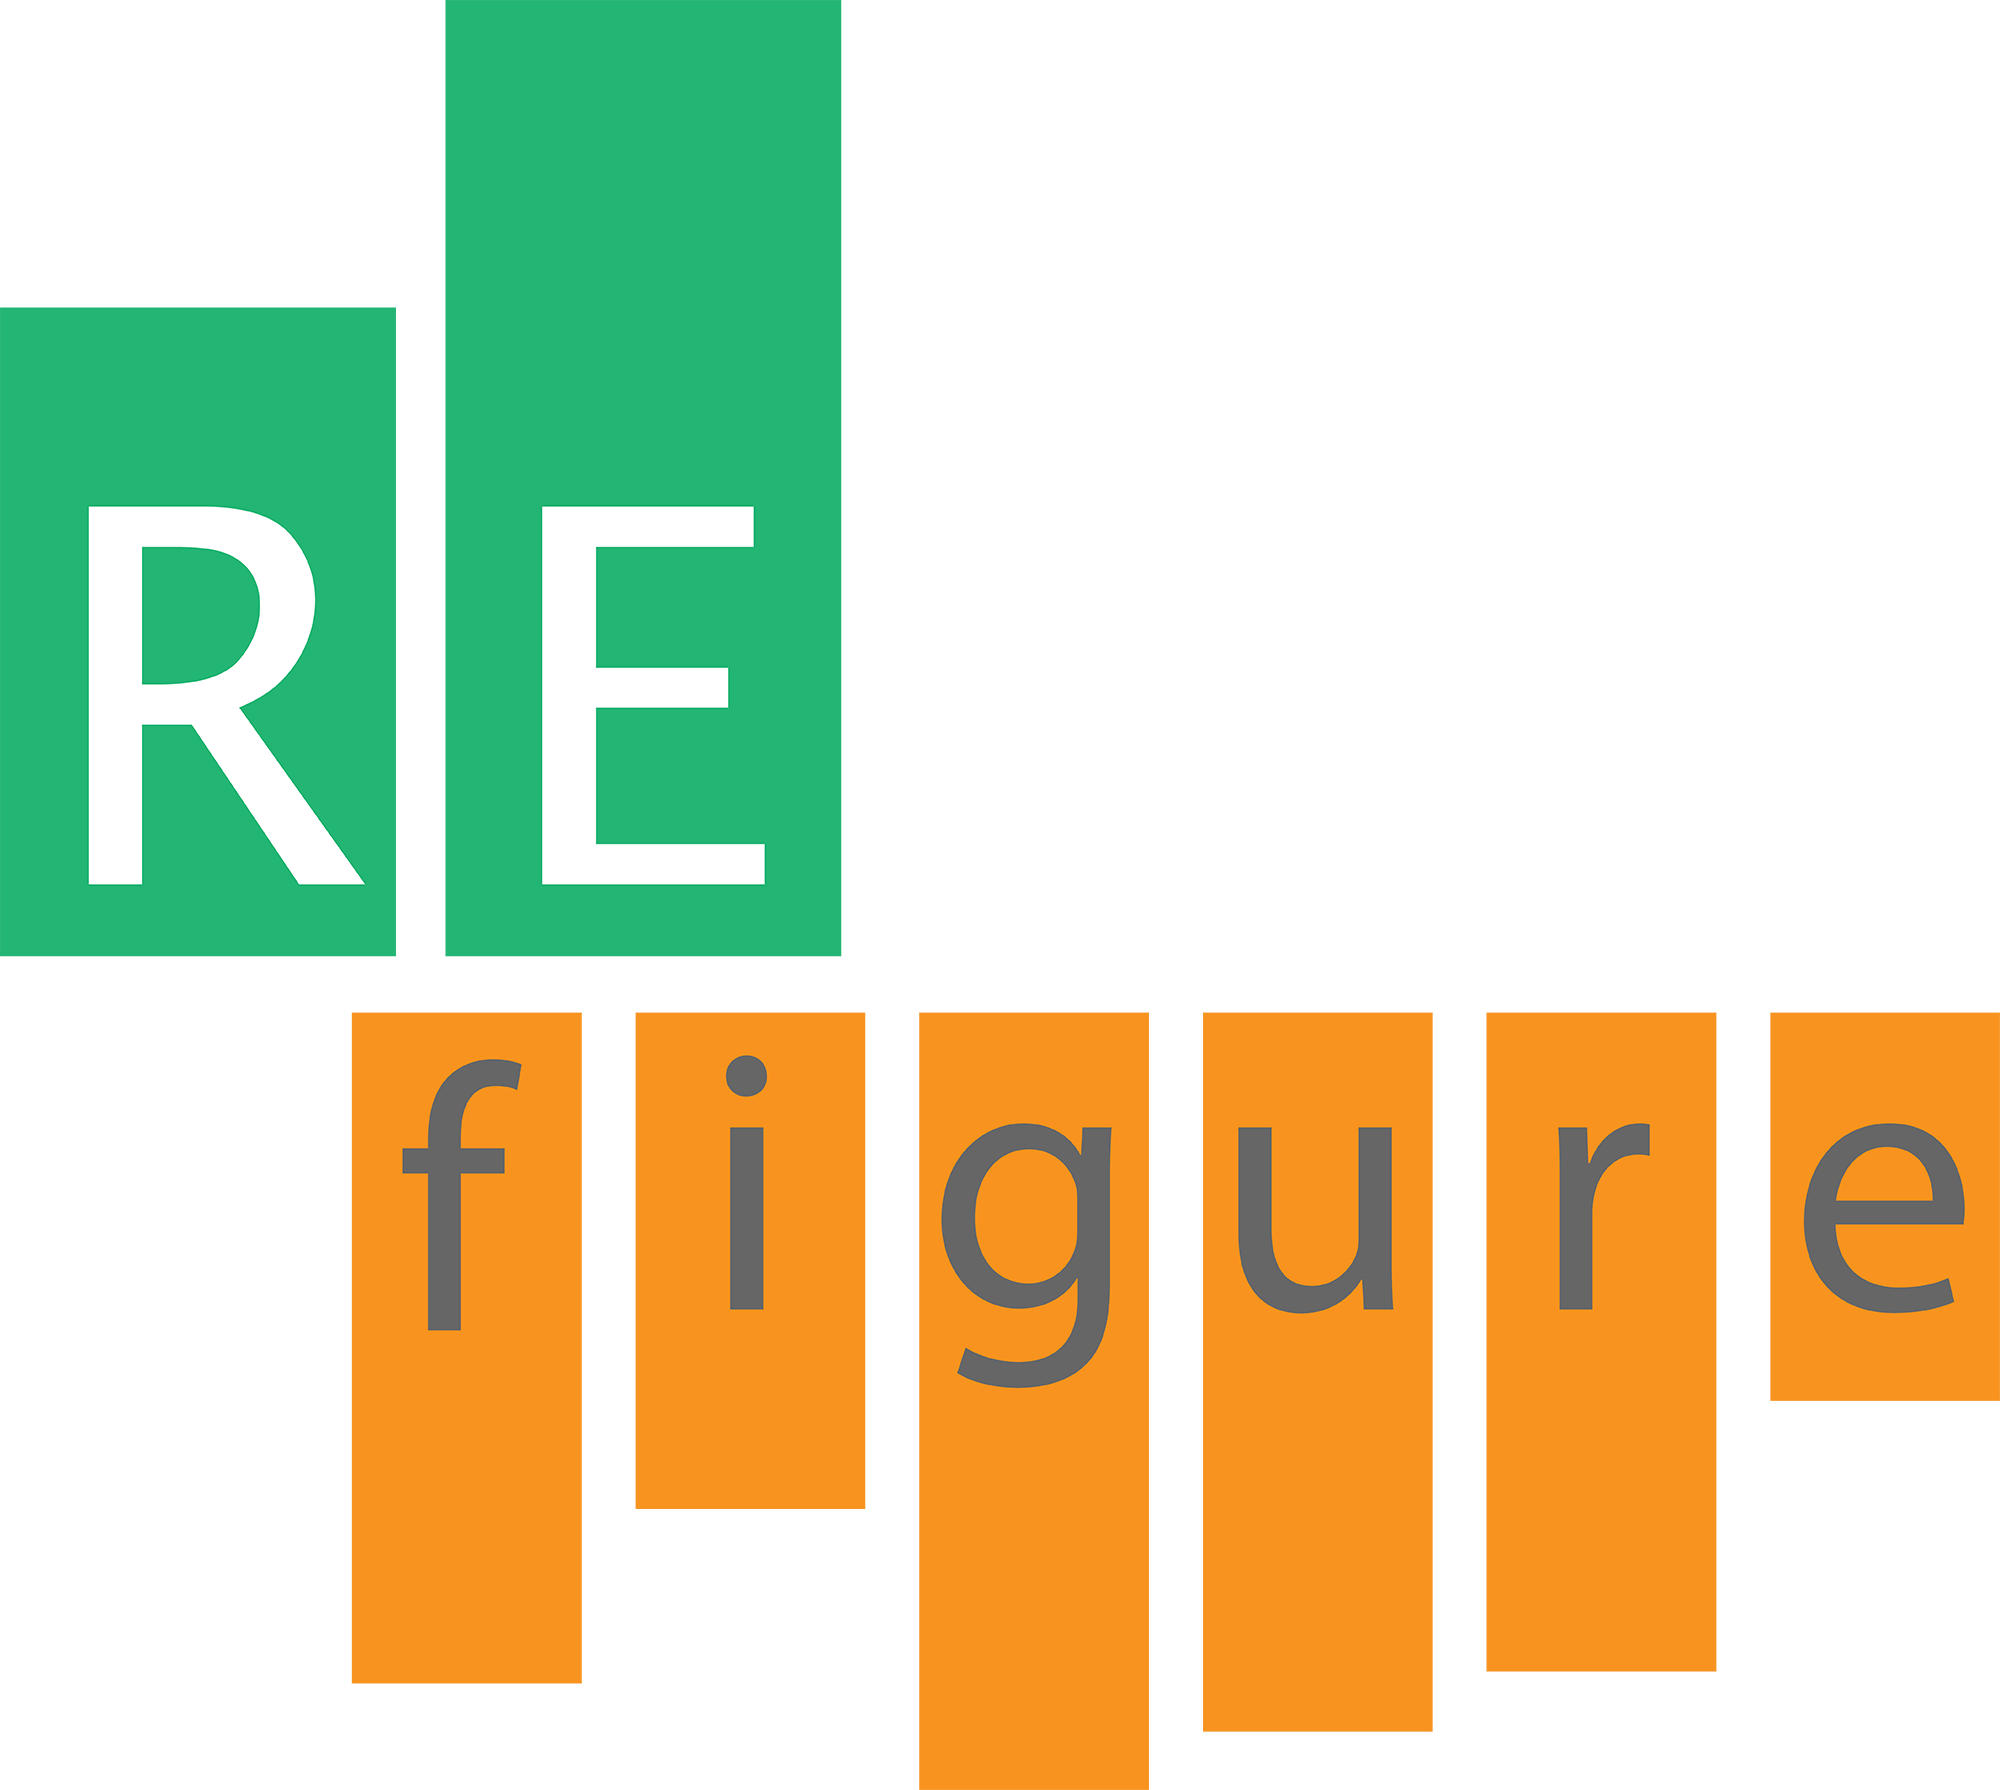 logo_ReFigure CC-BY.png